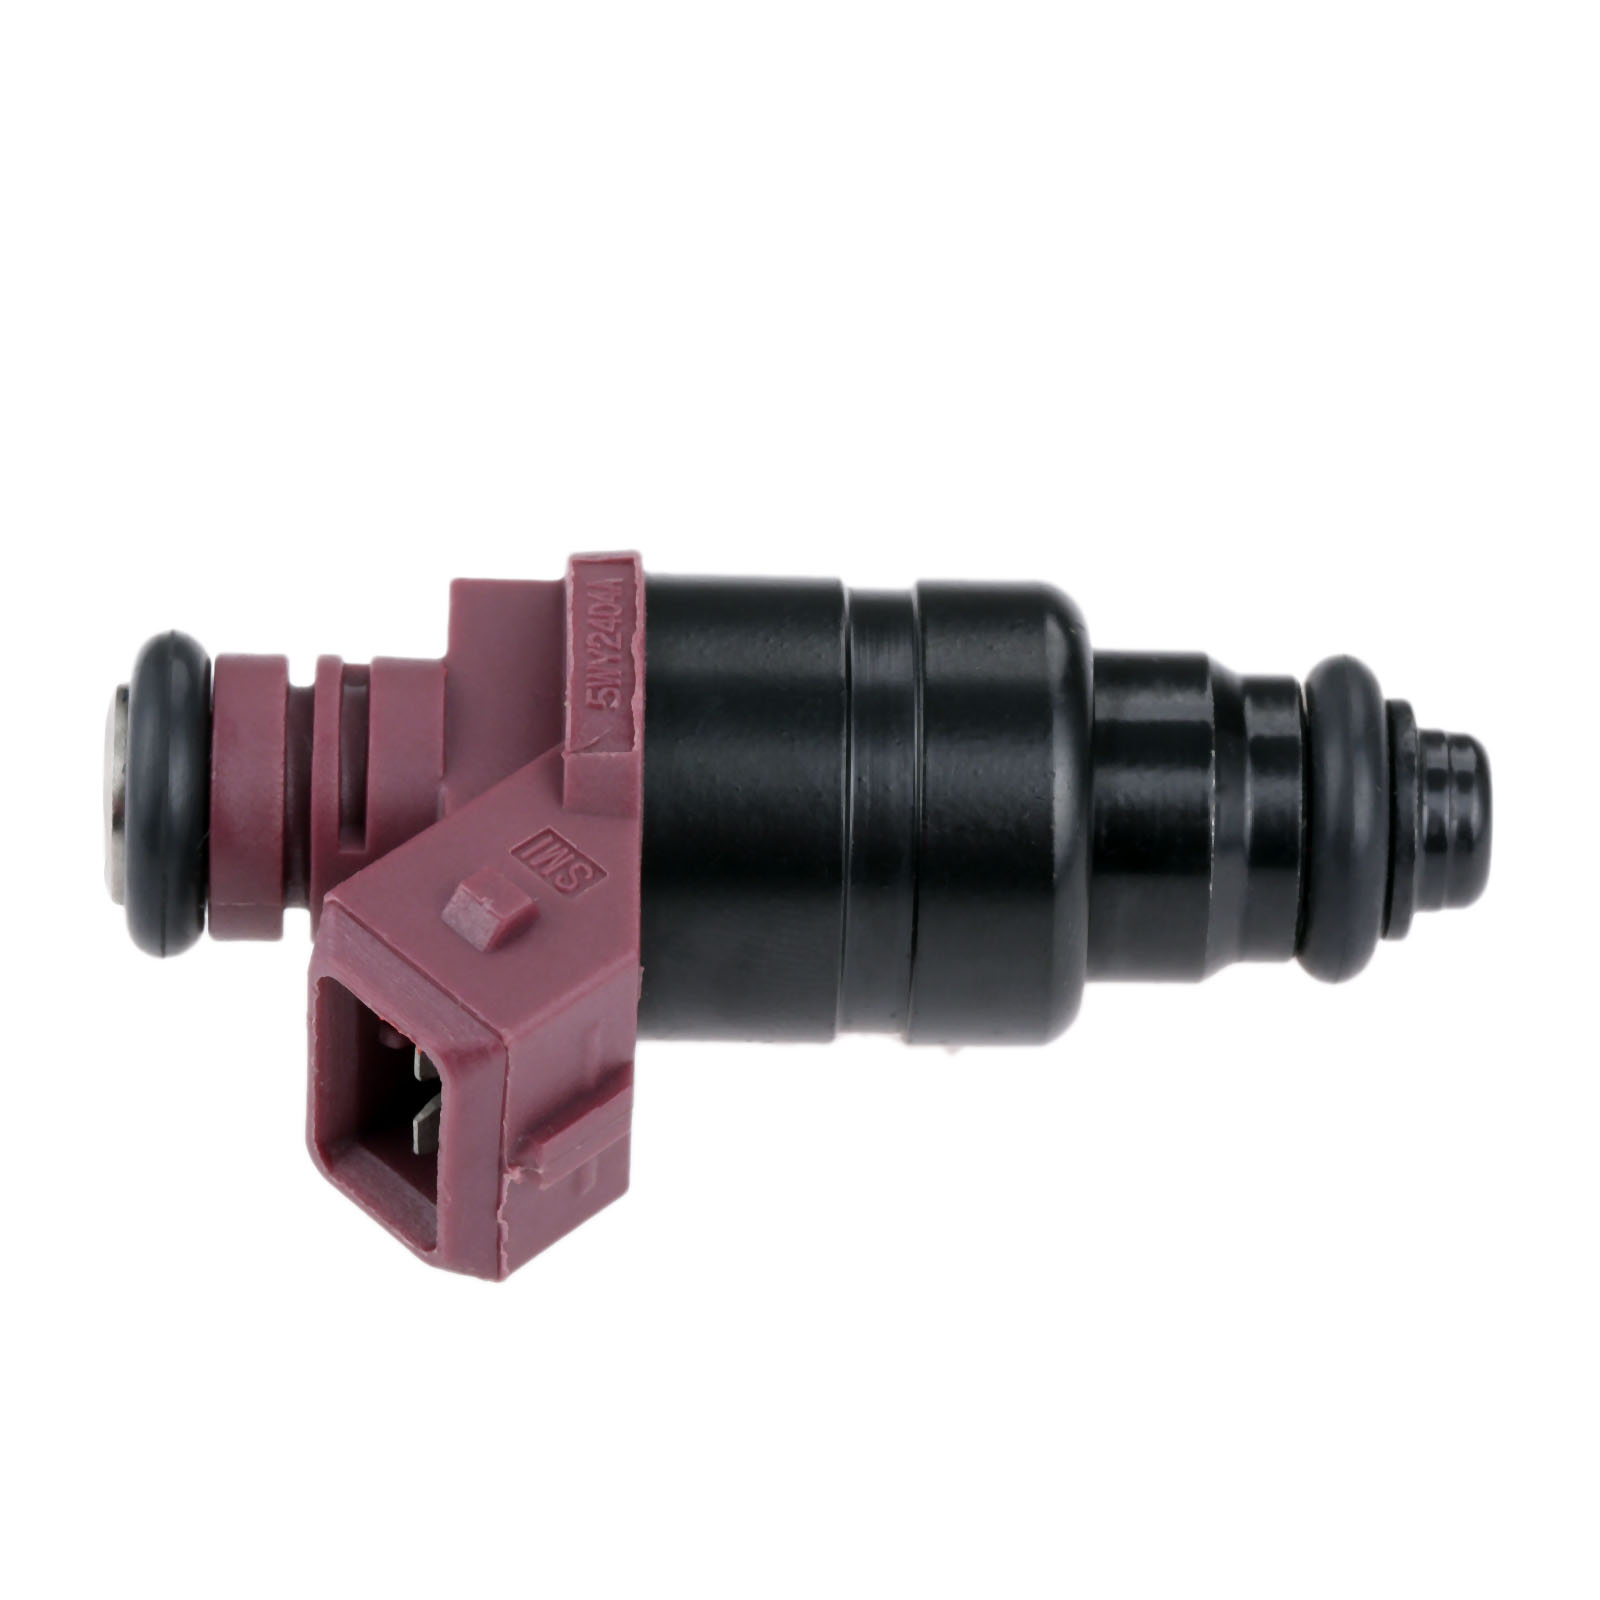 Image 3 - Yetaha New 5WY2404A Fuel Injector For John Deere 825i Gator UTV 3 Cylinder Engine Car Fuel Accessories-in Fuel Injector from Automobiles & Motorcycles